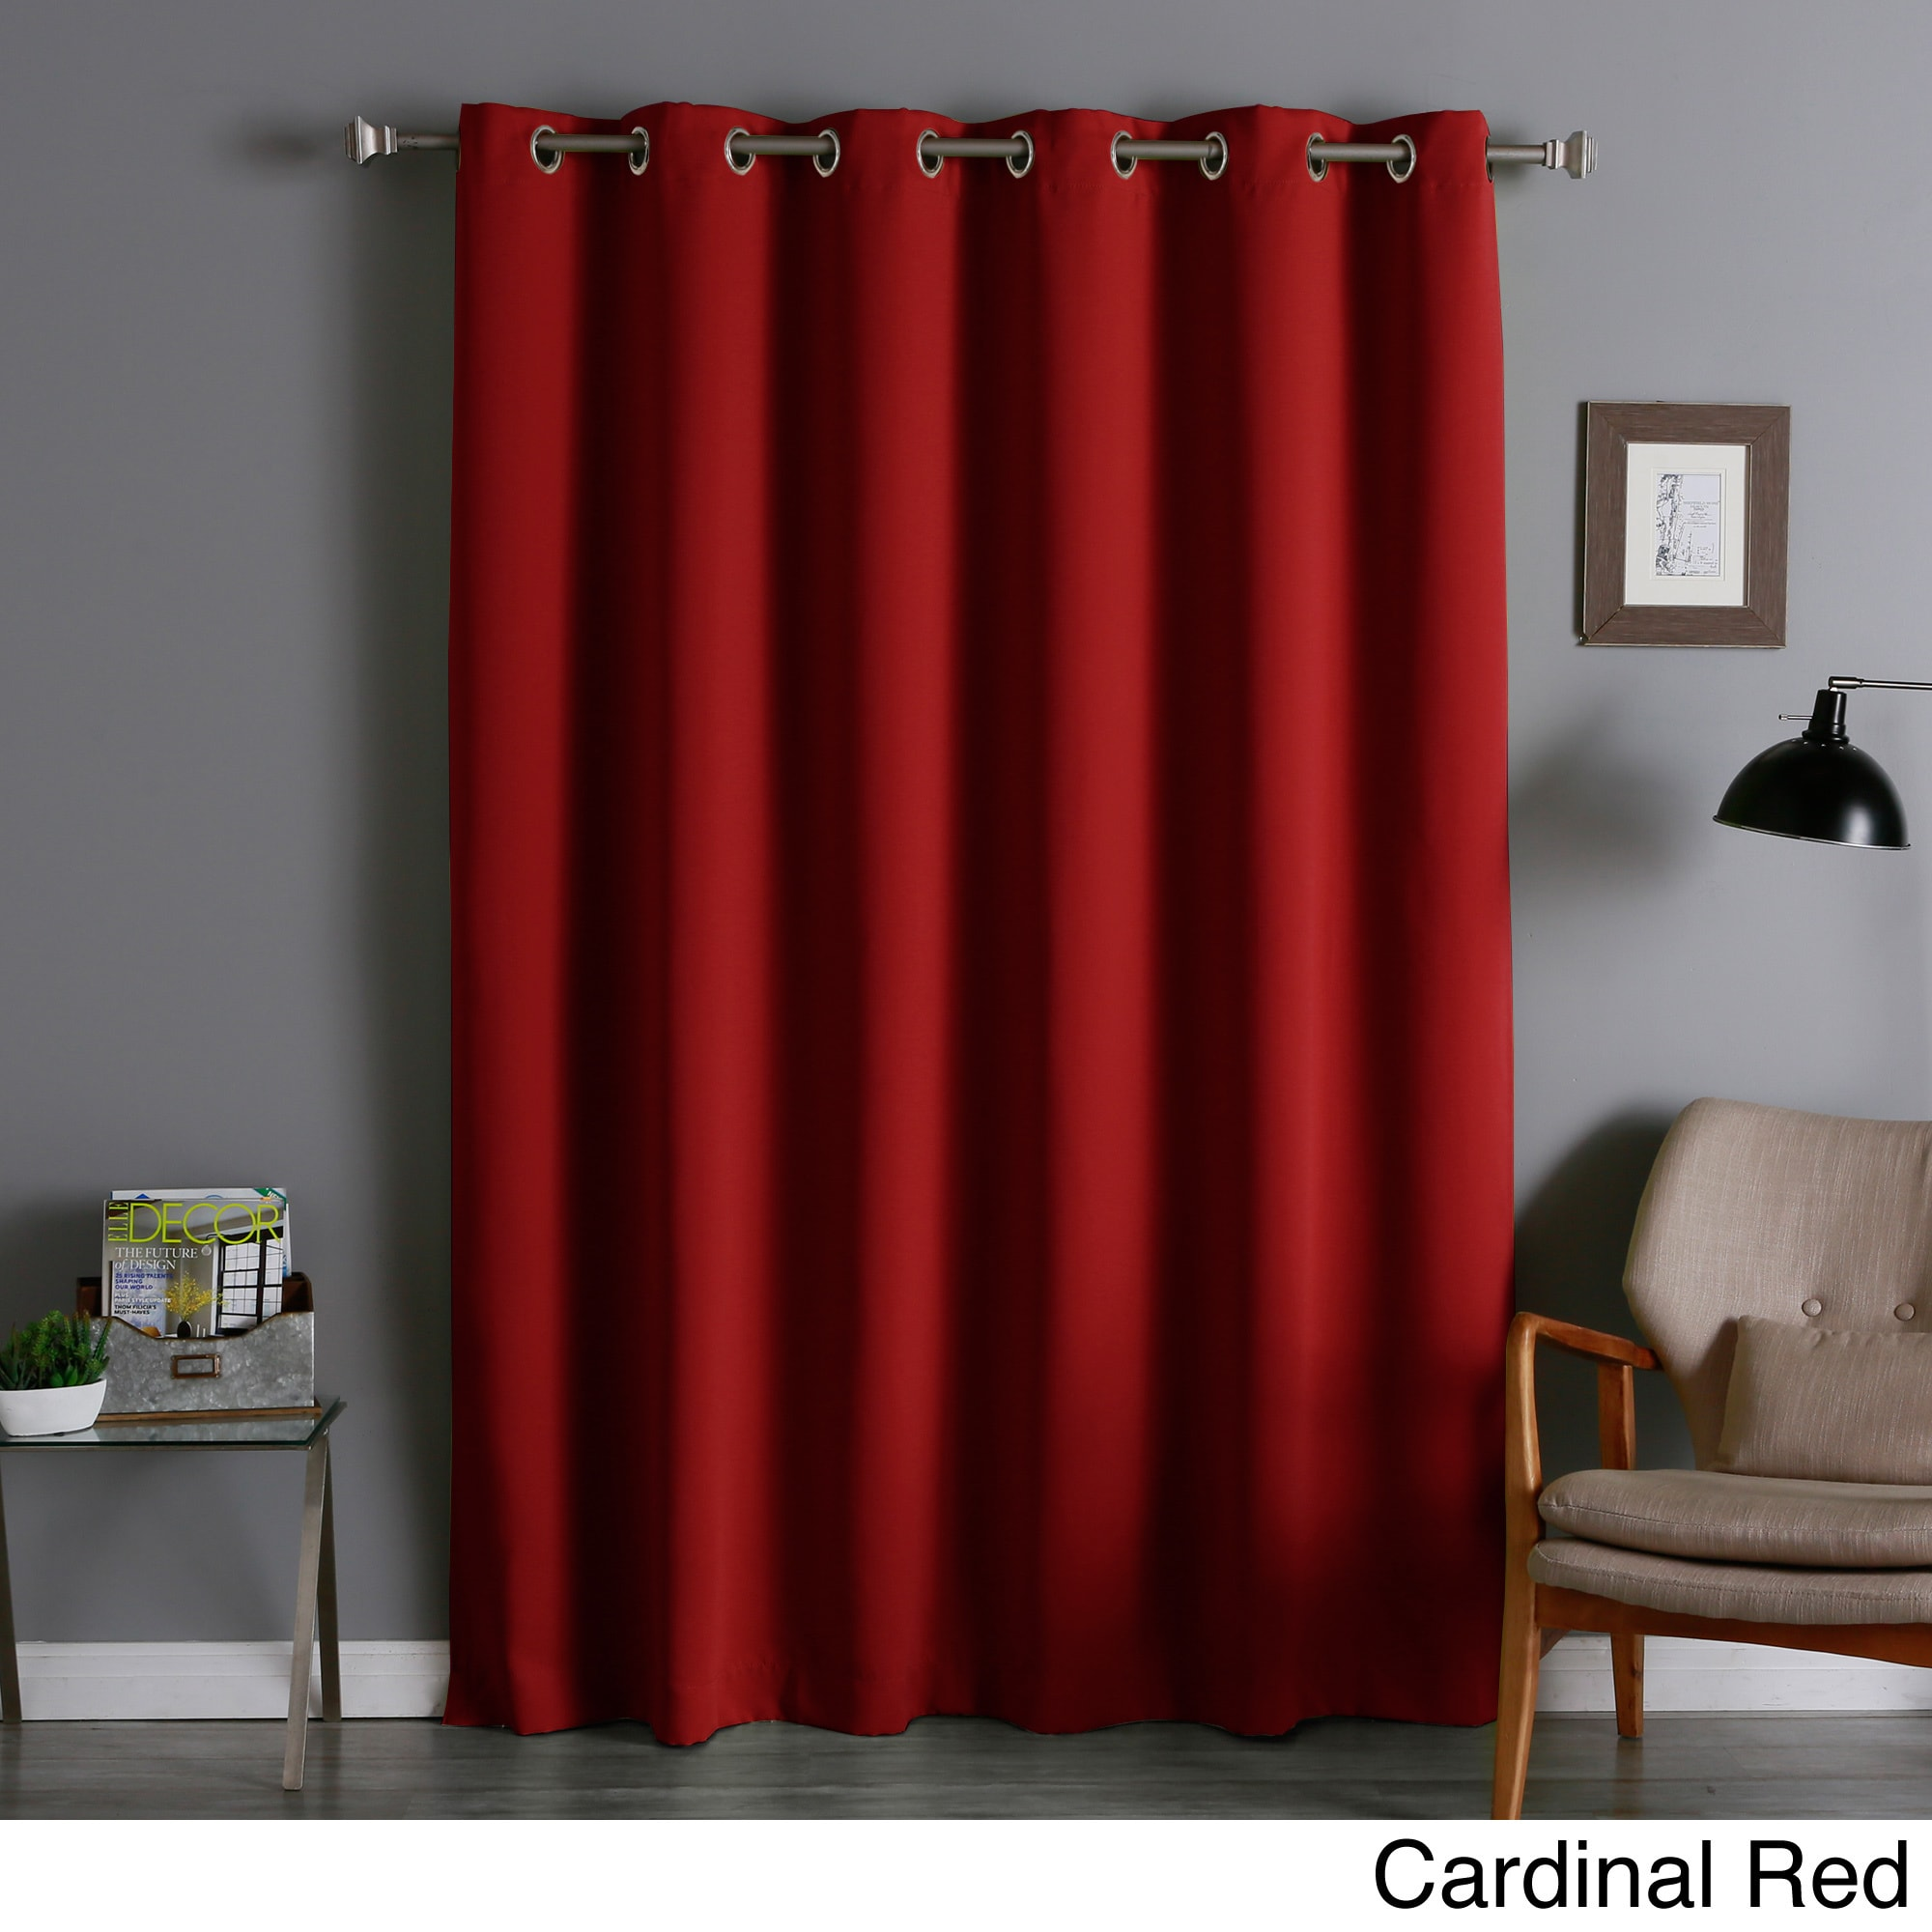 Aurora Home Extra Wide Thermal Insulated 84 Inch Blackout Curtain Panel Ebay